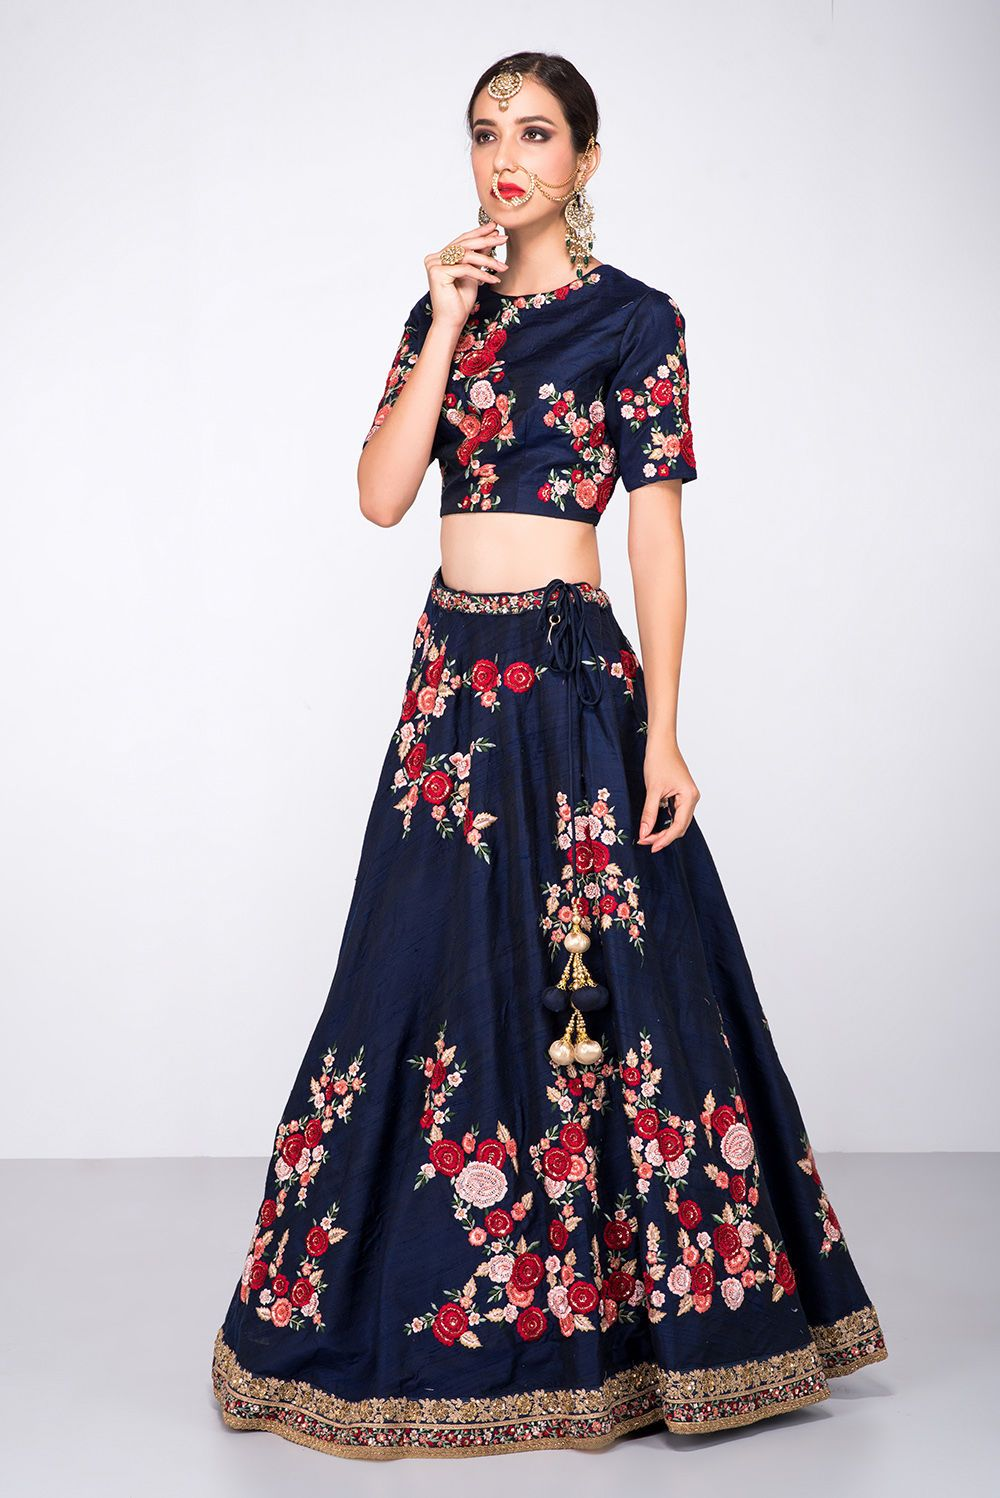 Niyoosh navy blue floral lehenga fashion i like pinterest navy